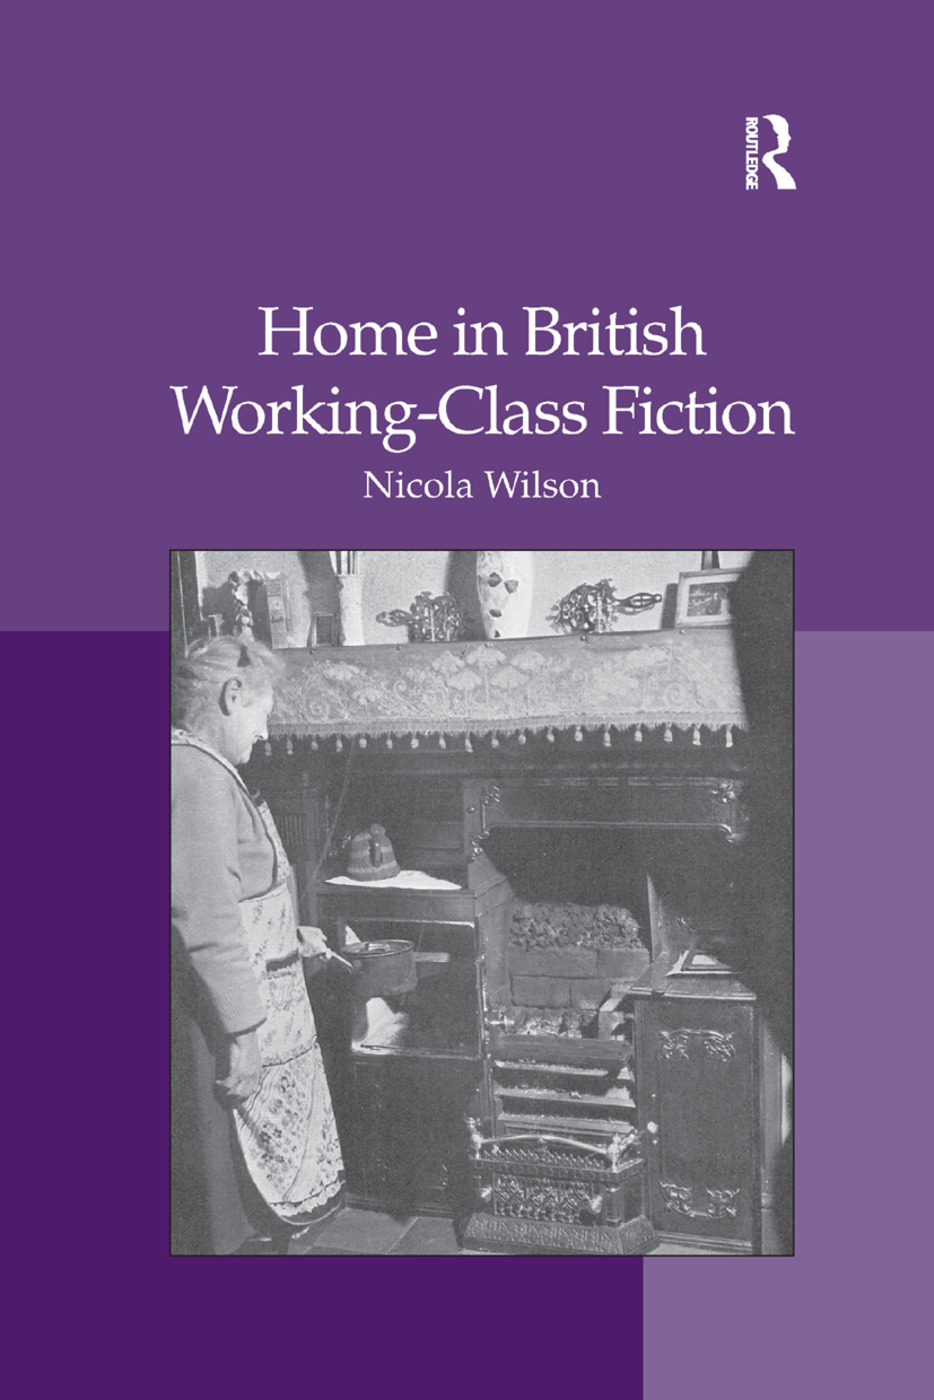 Home in British Working-Class Fiction